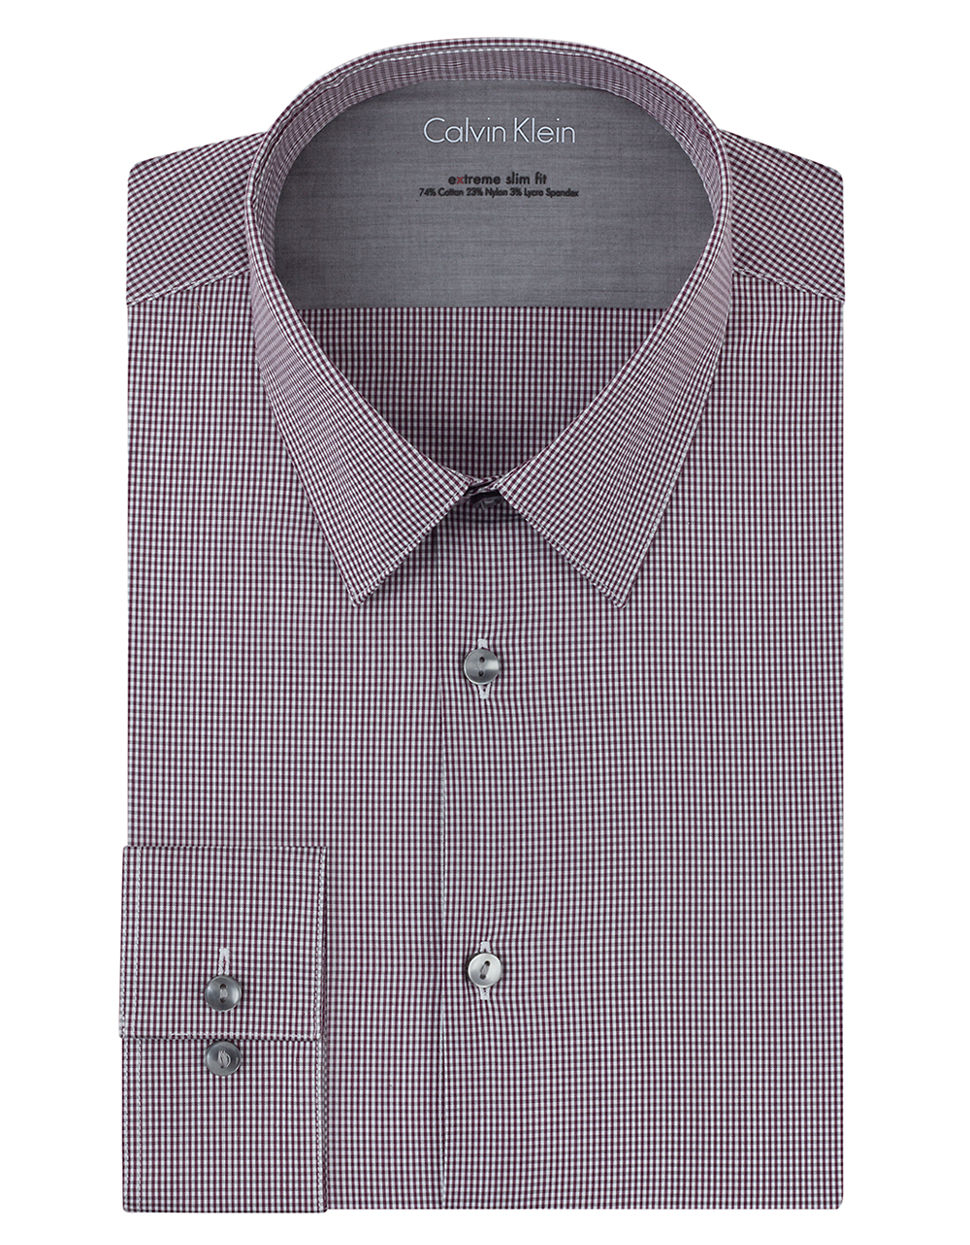 calvin klein extreme slim fit micro check dress shirt in